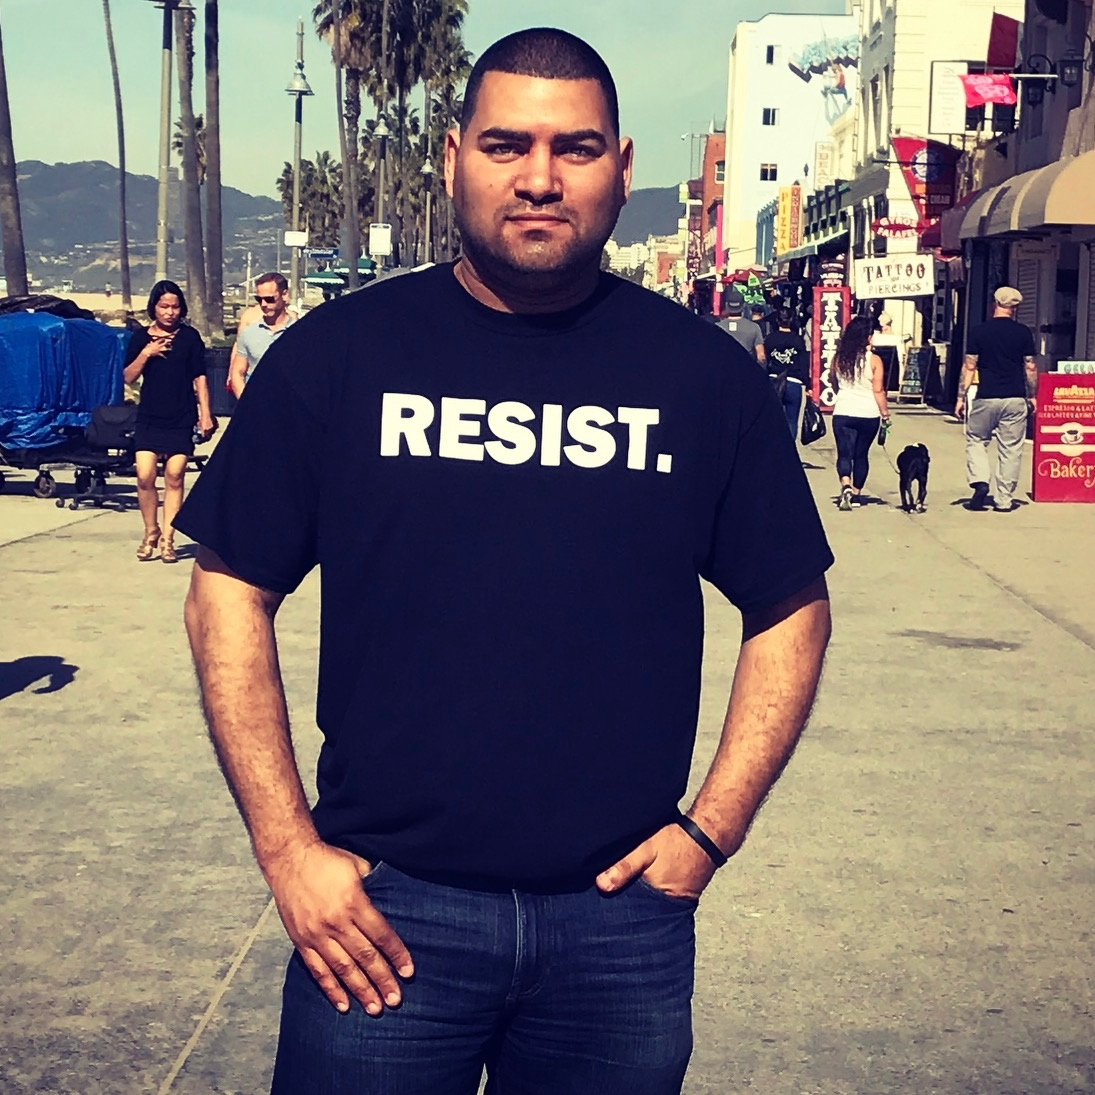 """This is the moment I decided to run for elected office. I took this picture on vacation in Venice Beach. I had a free day and decided to walk the neighborhood with my new """"Resist."""" shirt. It's not easy to walk around with such a bold statement on your chest, but I felt that people needed a reminder to stay woke. While I continue to be an activist, running for office was my way to ensure that more progressive voices are also being heard on the inside."""